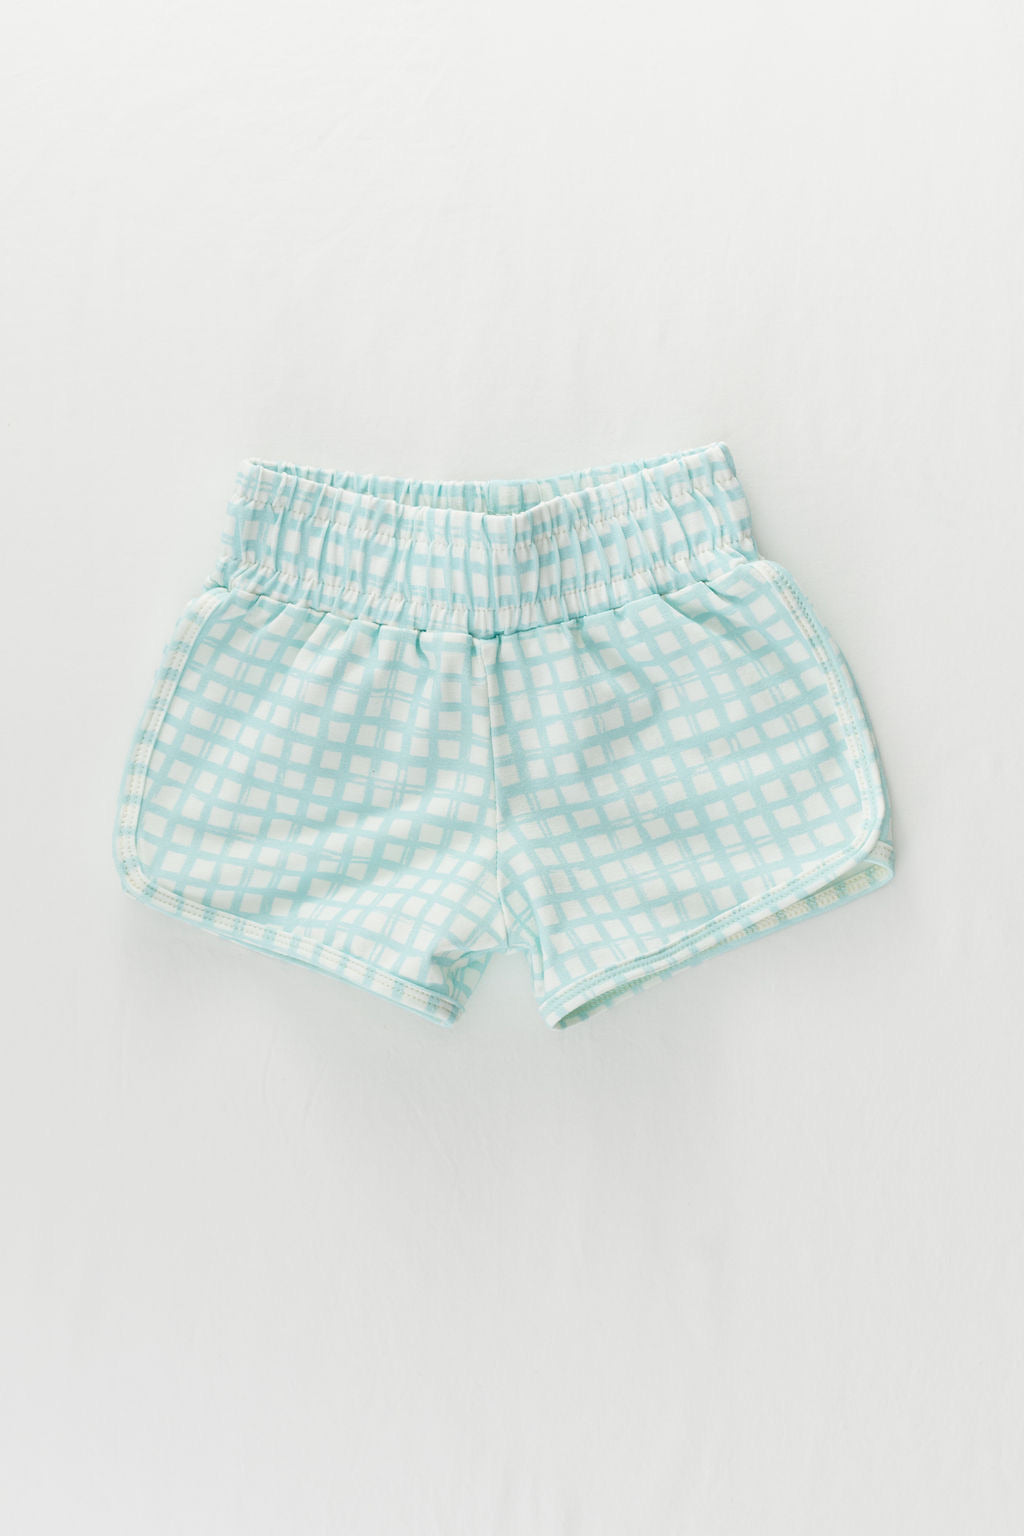 Sky Blue Grid Retro Shorts